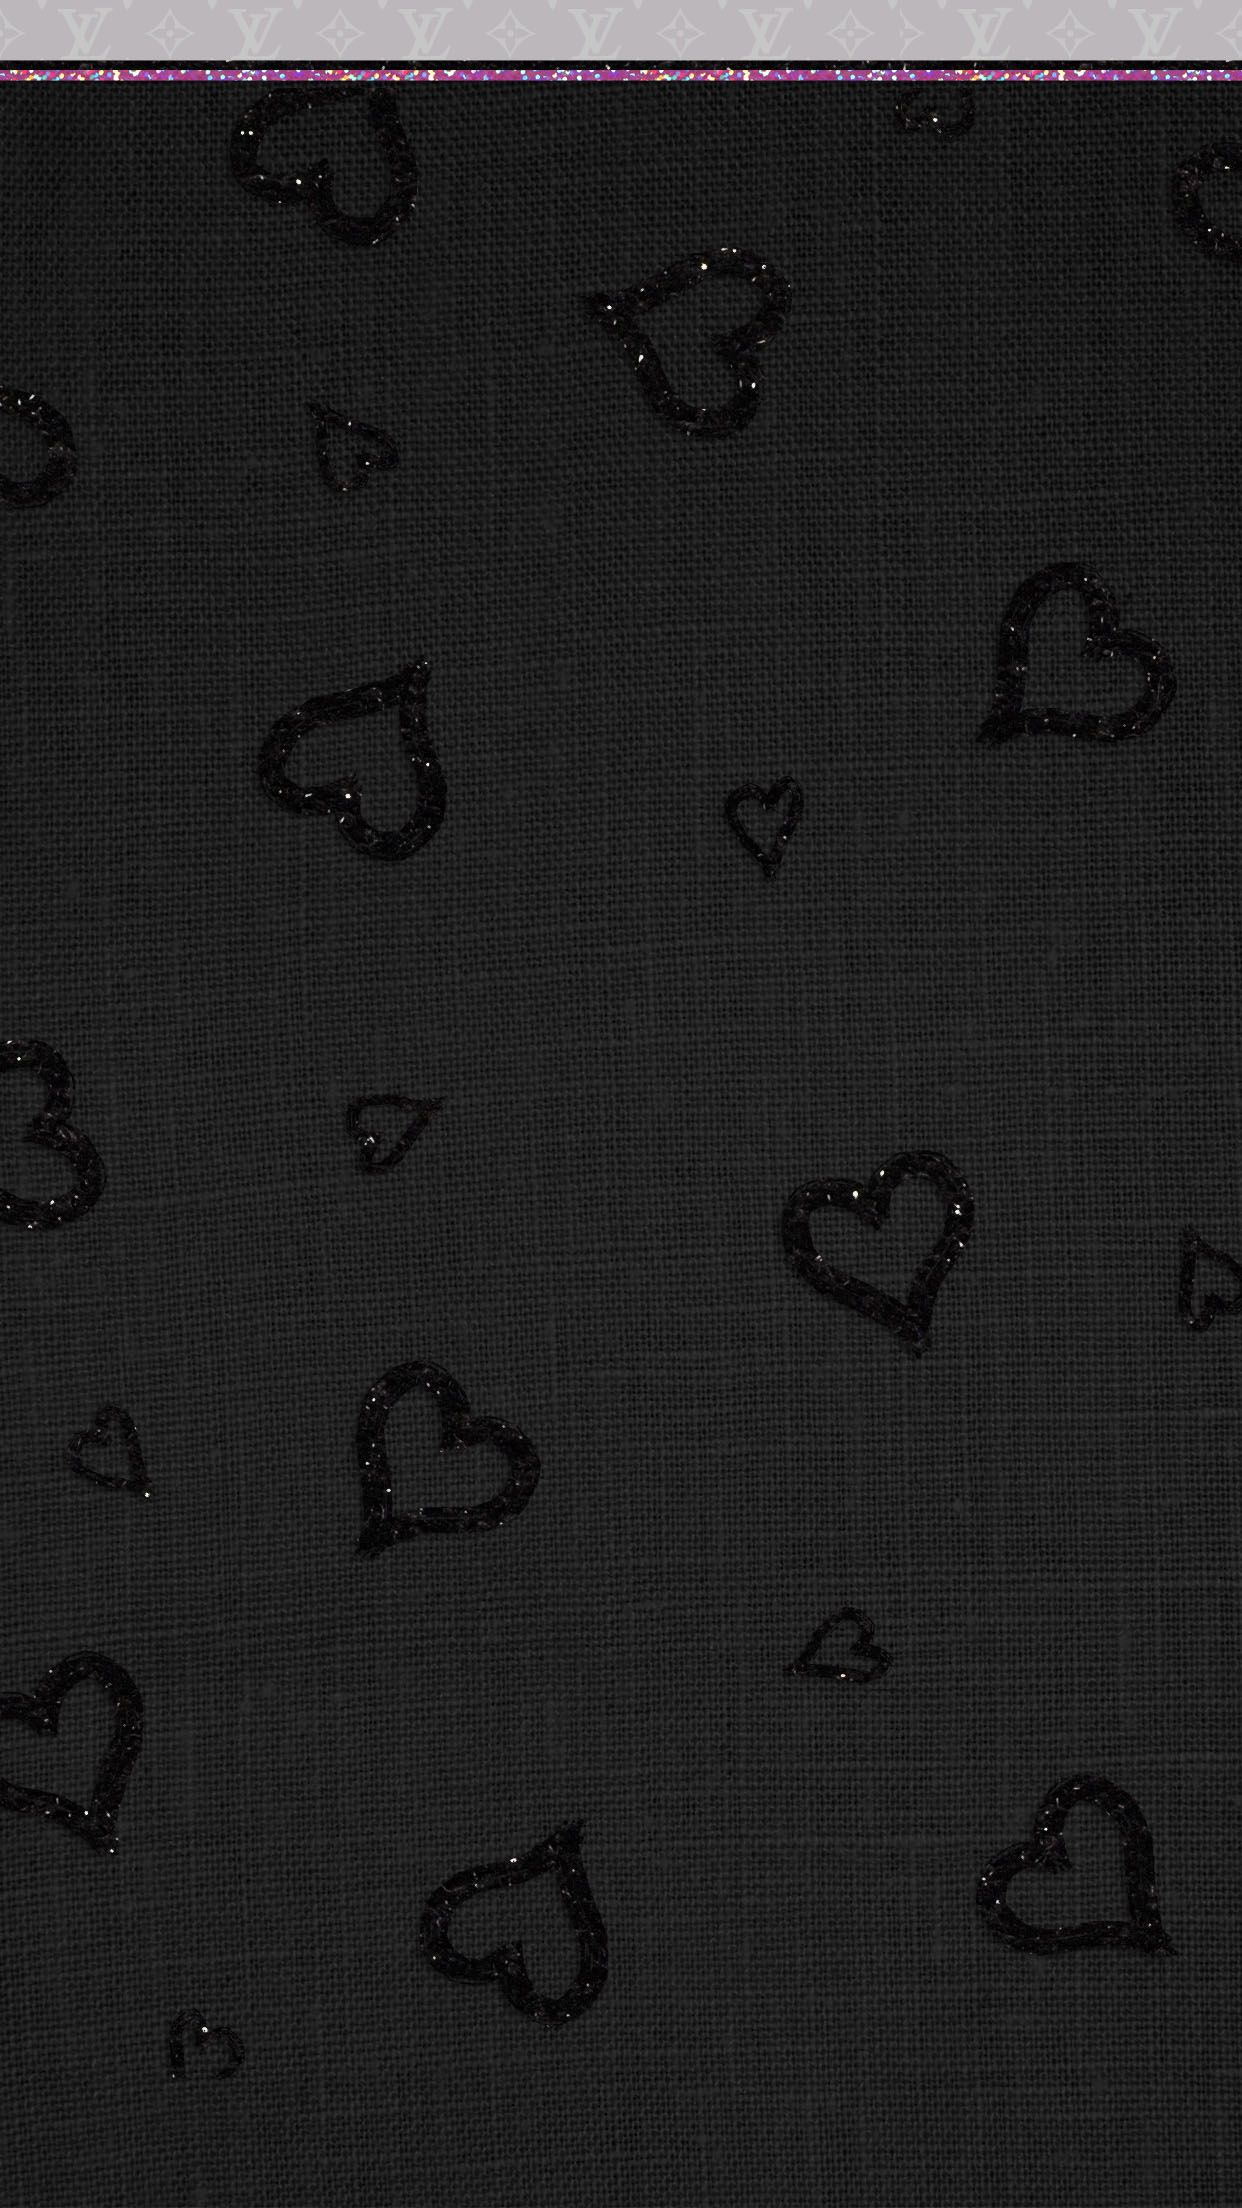 Get Good Black Wallpaper Iphone Glitter Valentines Day for iPhone XR Free